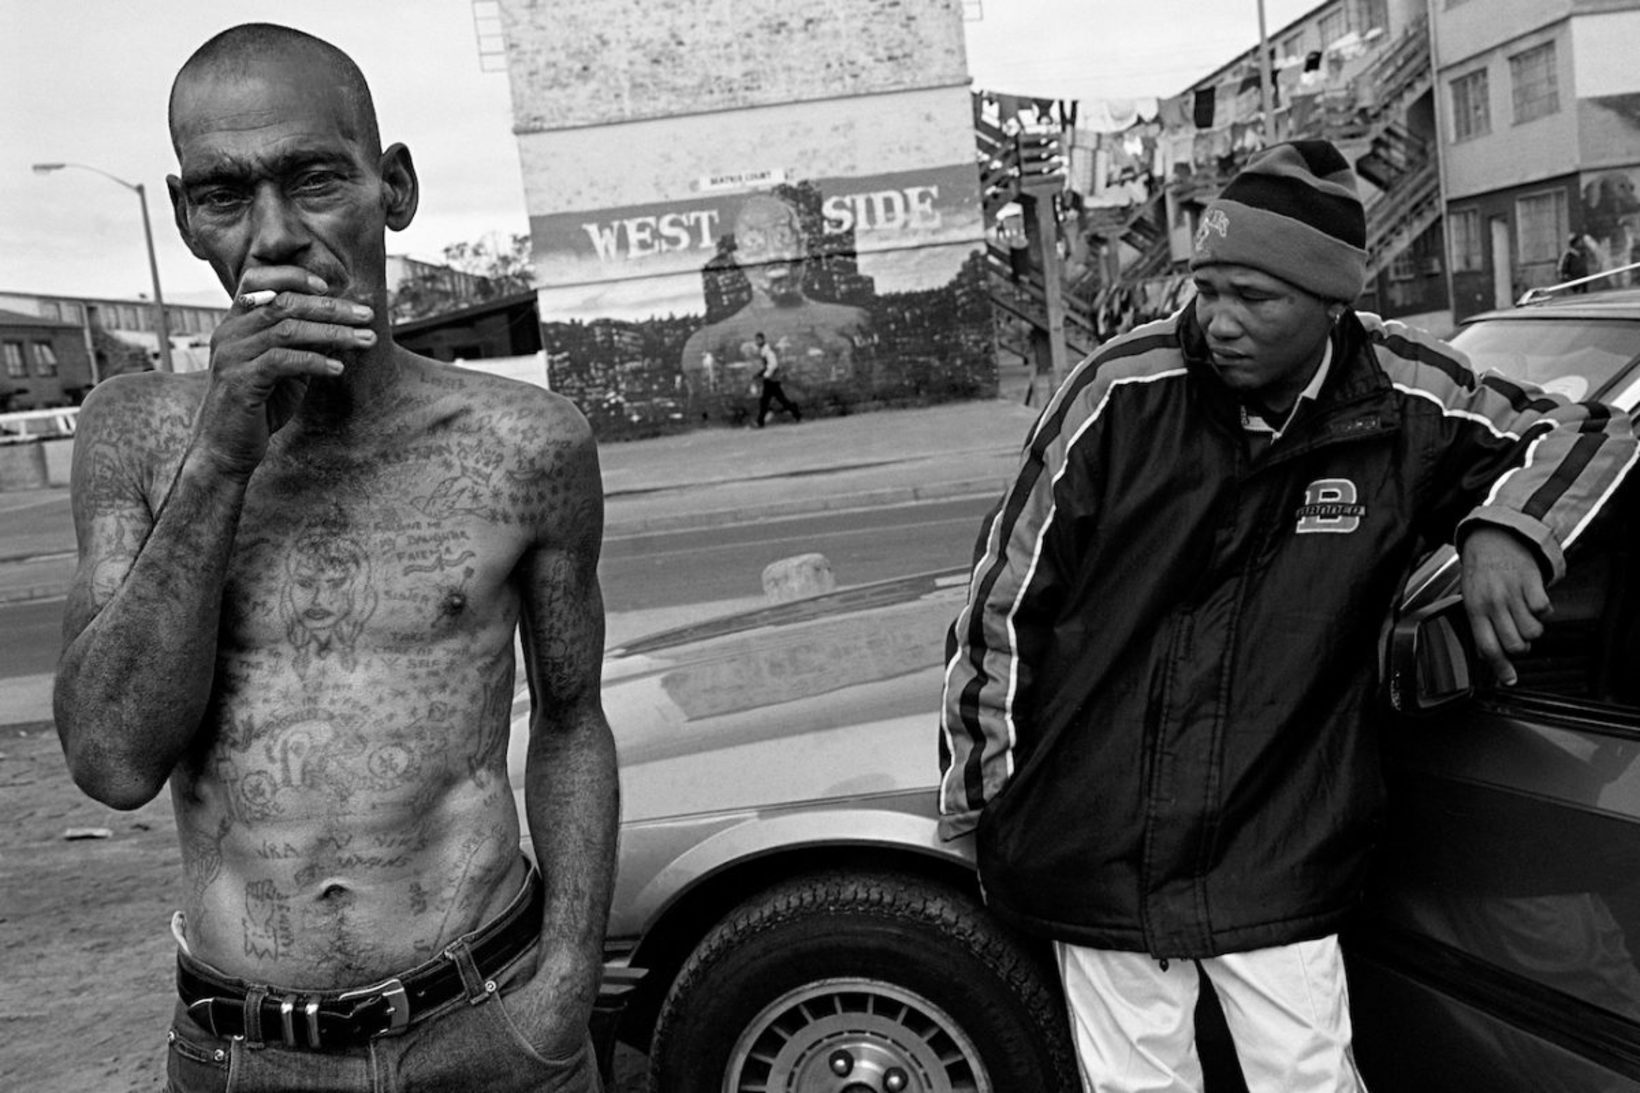 Cape Town gangs and drugs,